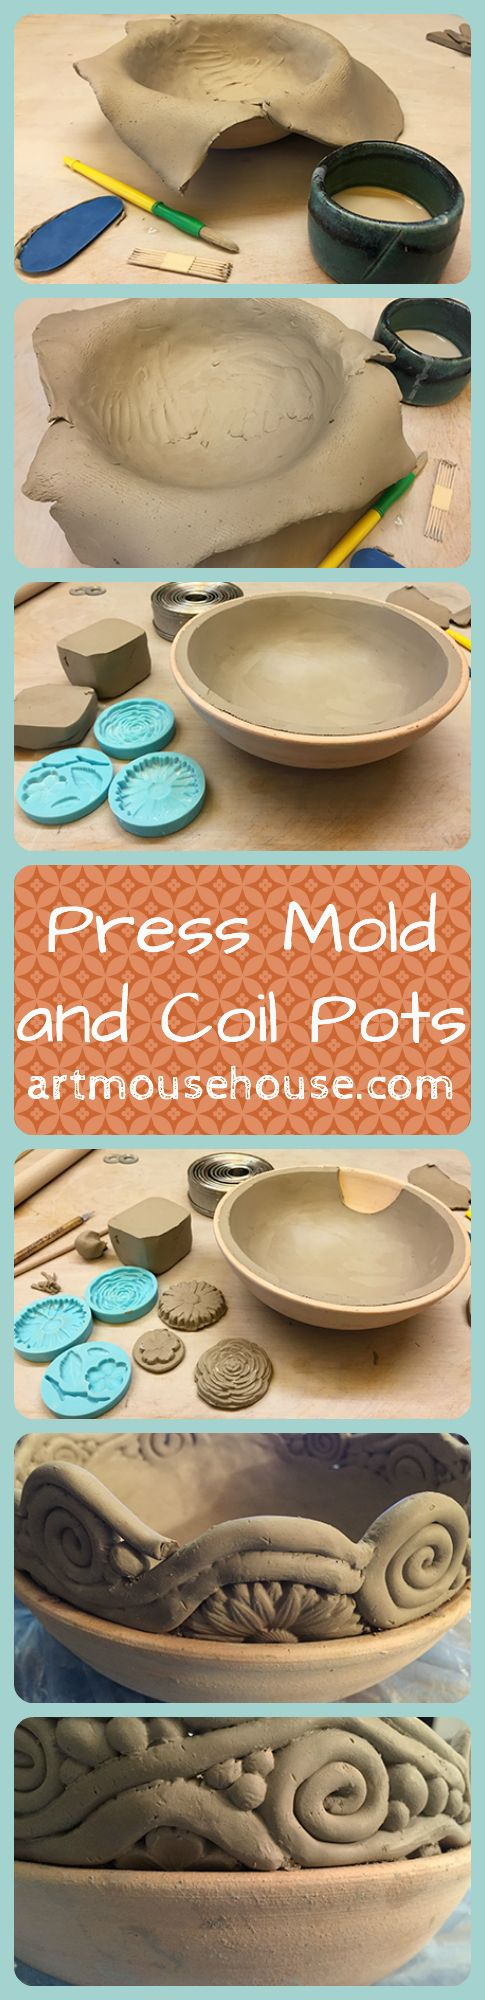 a step-by-step lesson in making a press mold ceramic pot with decorative coils--check out artmousehouse.com for more details